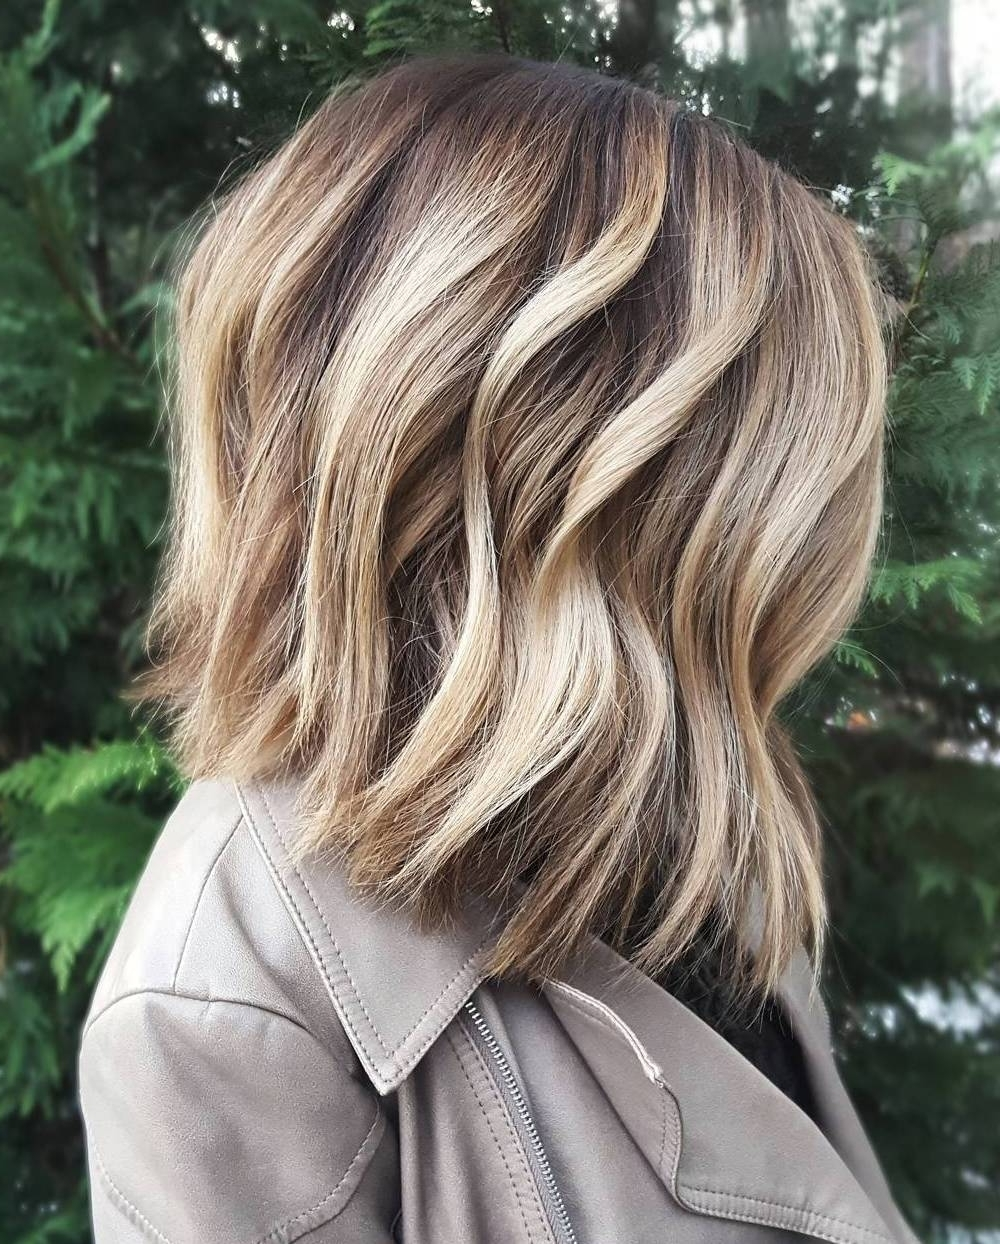 Favorite Brunette Hairstyles With Dirty Blonde Ends Pertaining To 20 Dirty Blonde Hair Ideas That Work On Everyone (View 5 of 20)